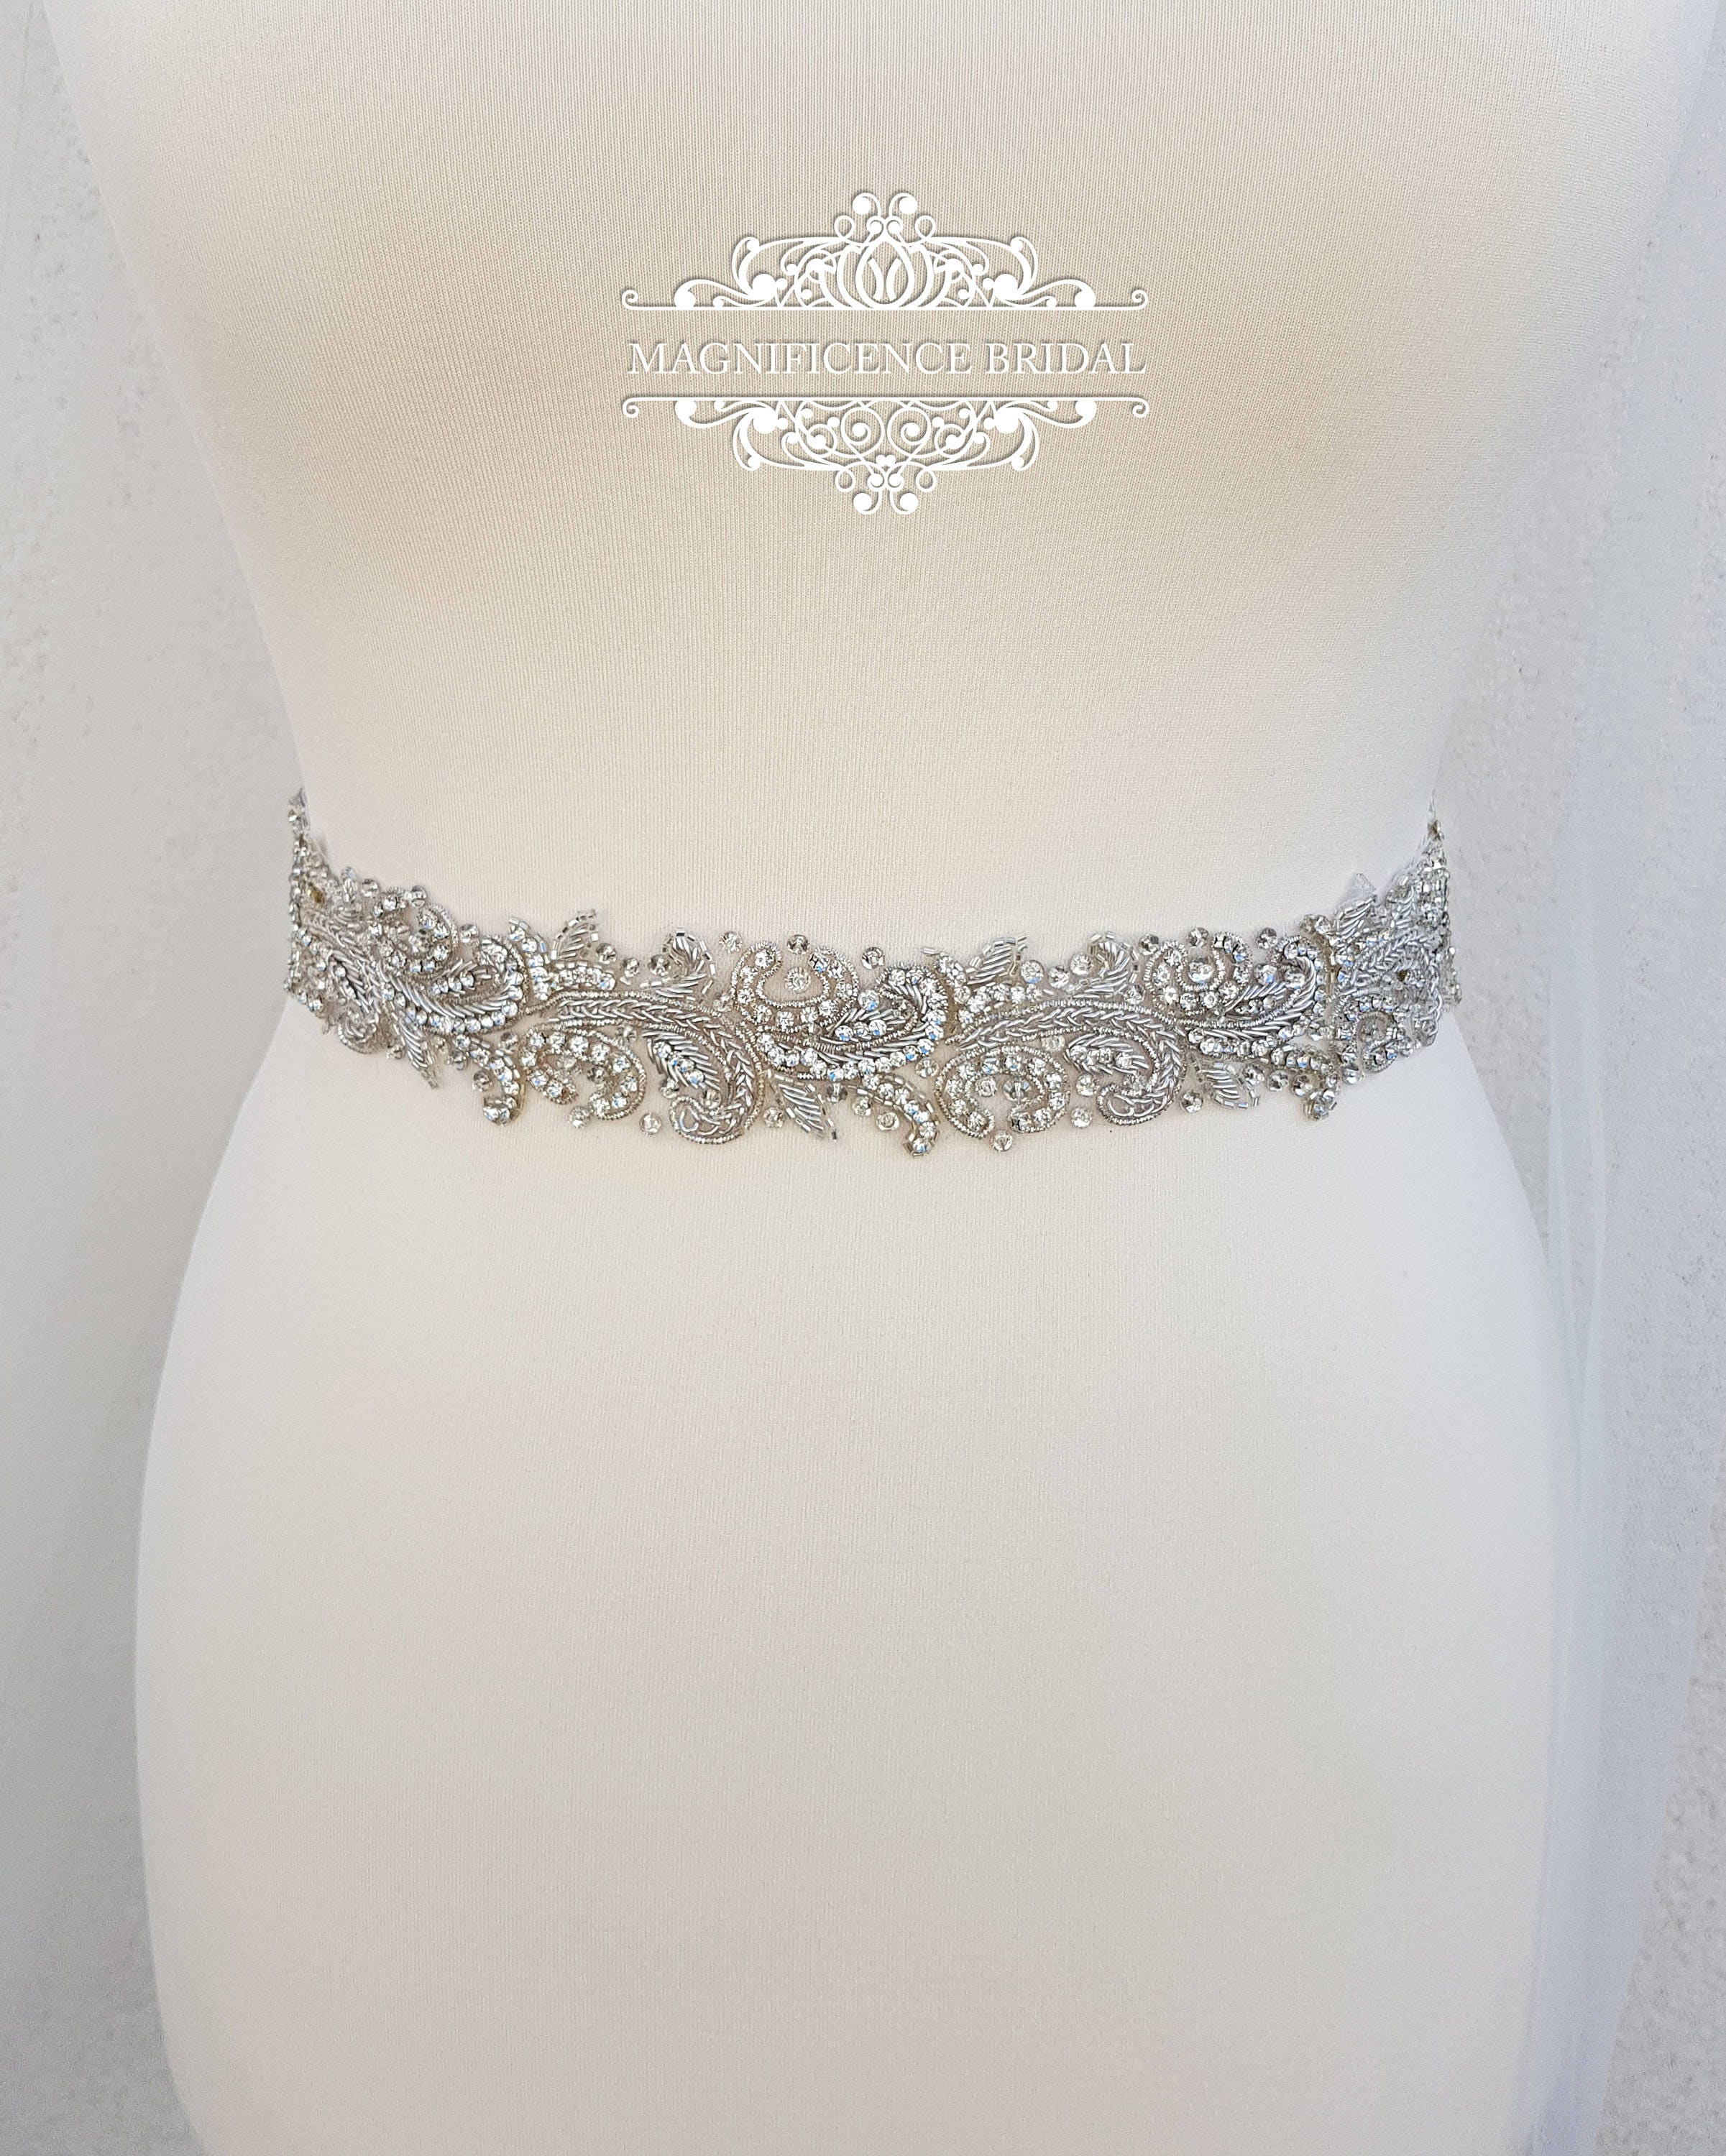 Luxury Bridal Belt Silver Wedding Dress Embellished Diamante Sparkly LINDA